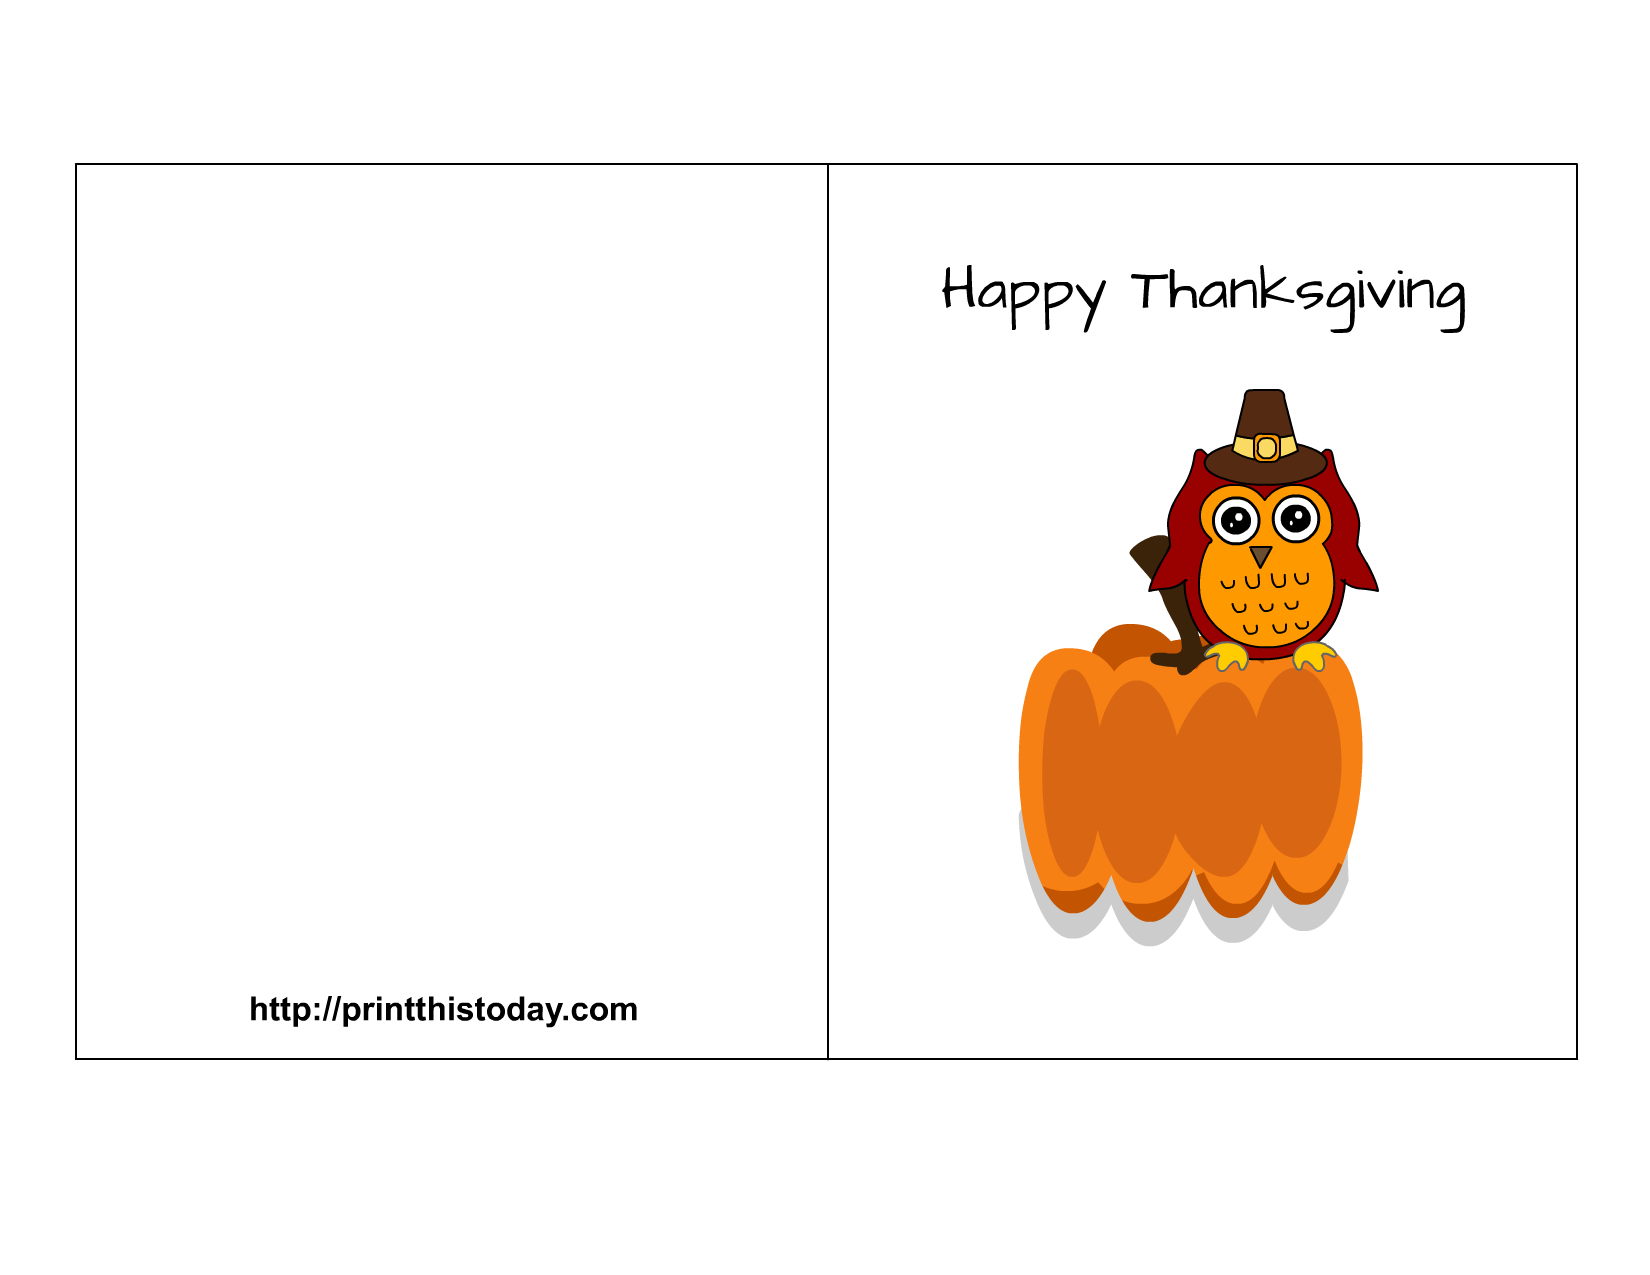 It's just an image of Resource Free Printable Thanksgiving Cards